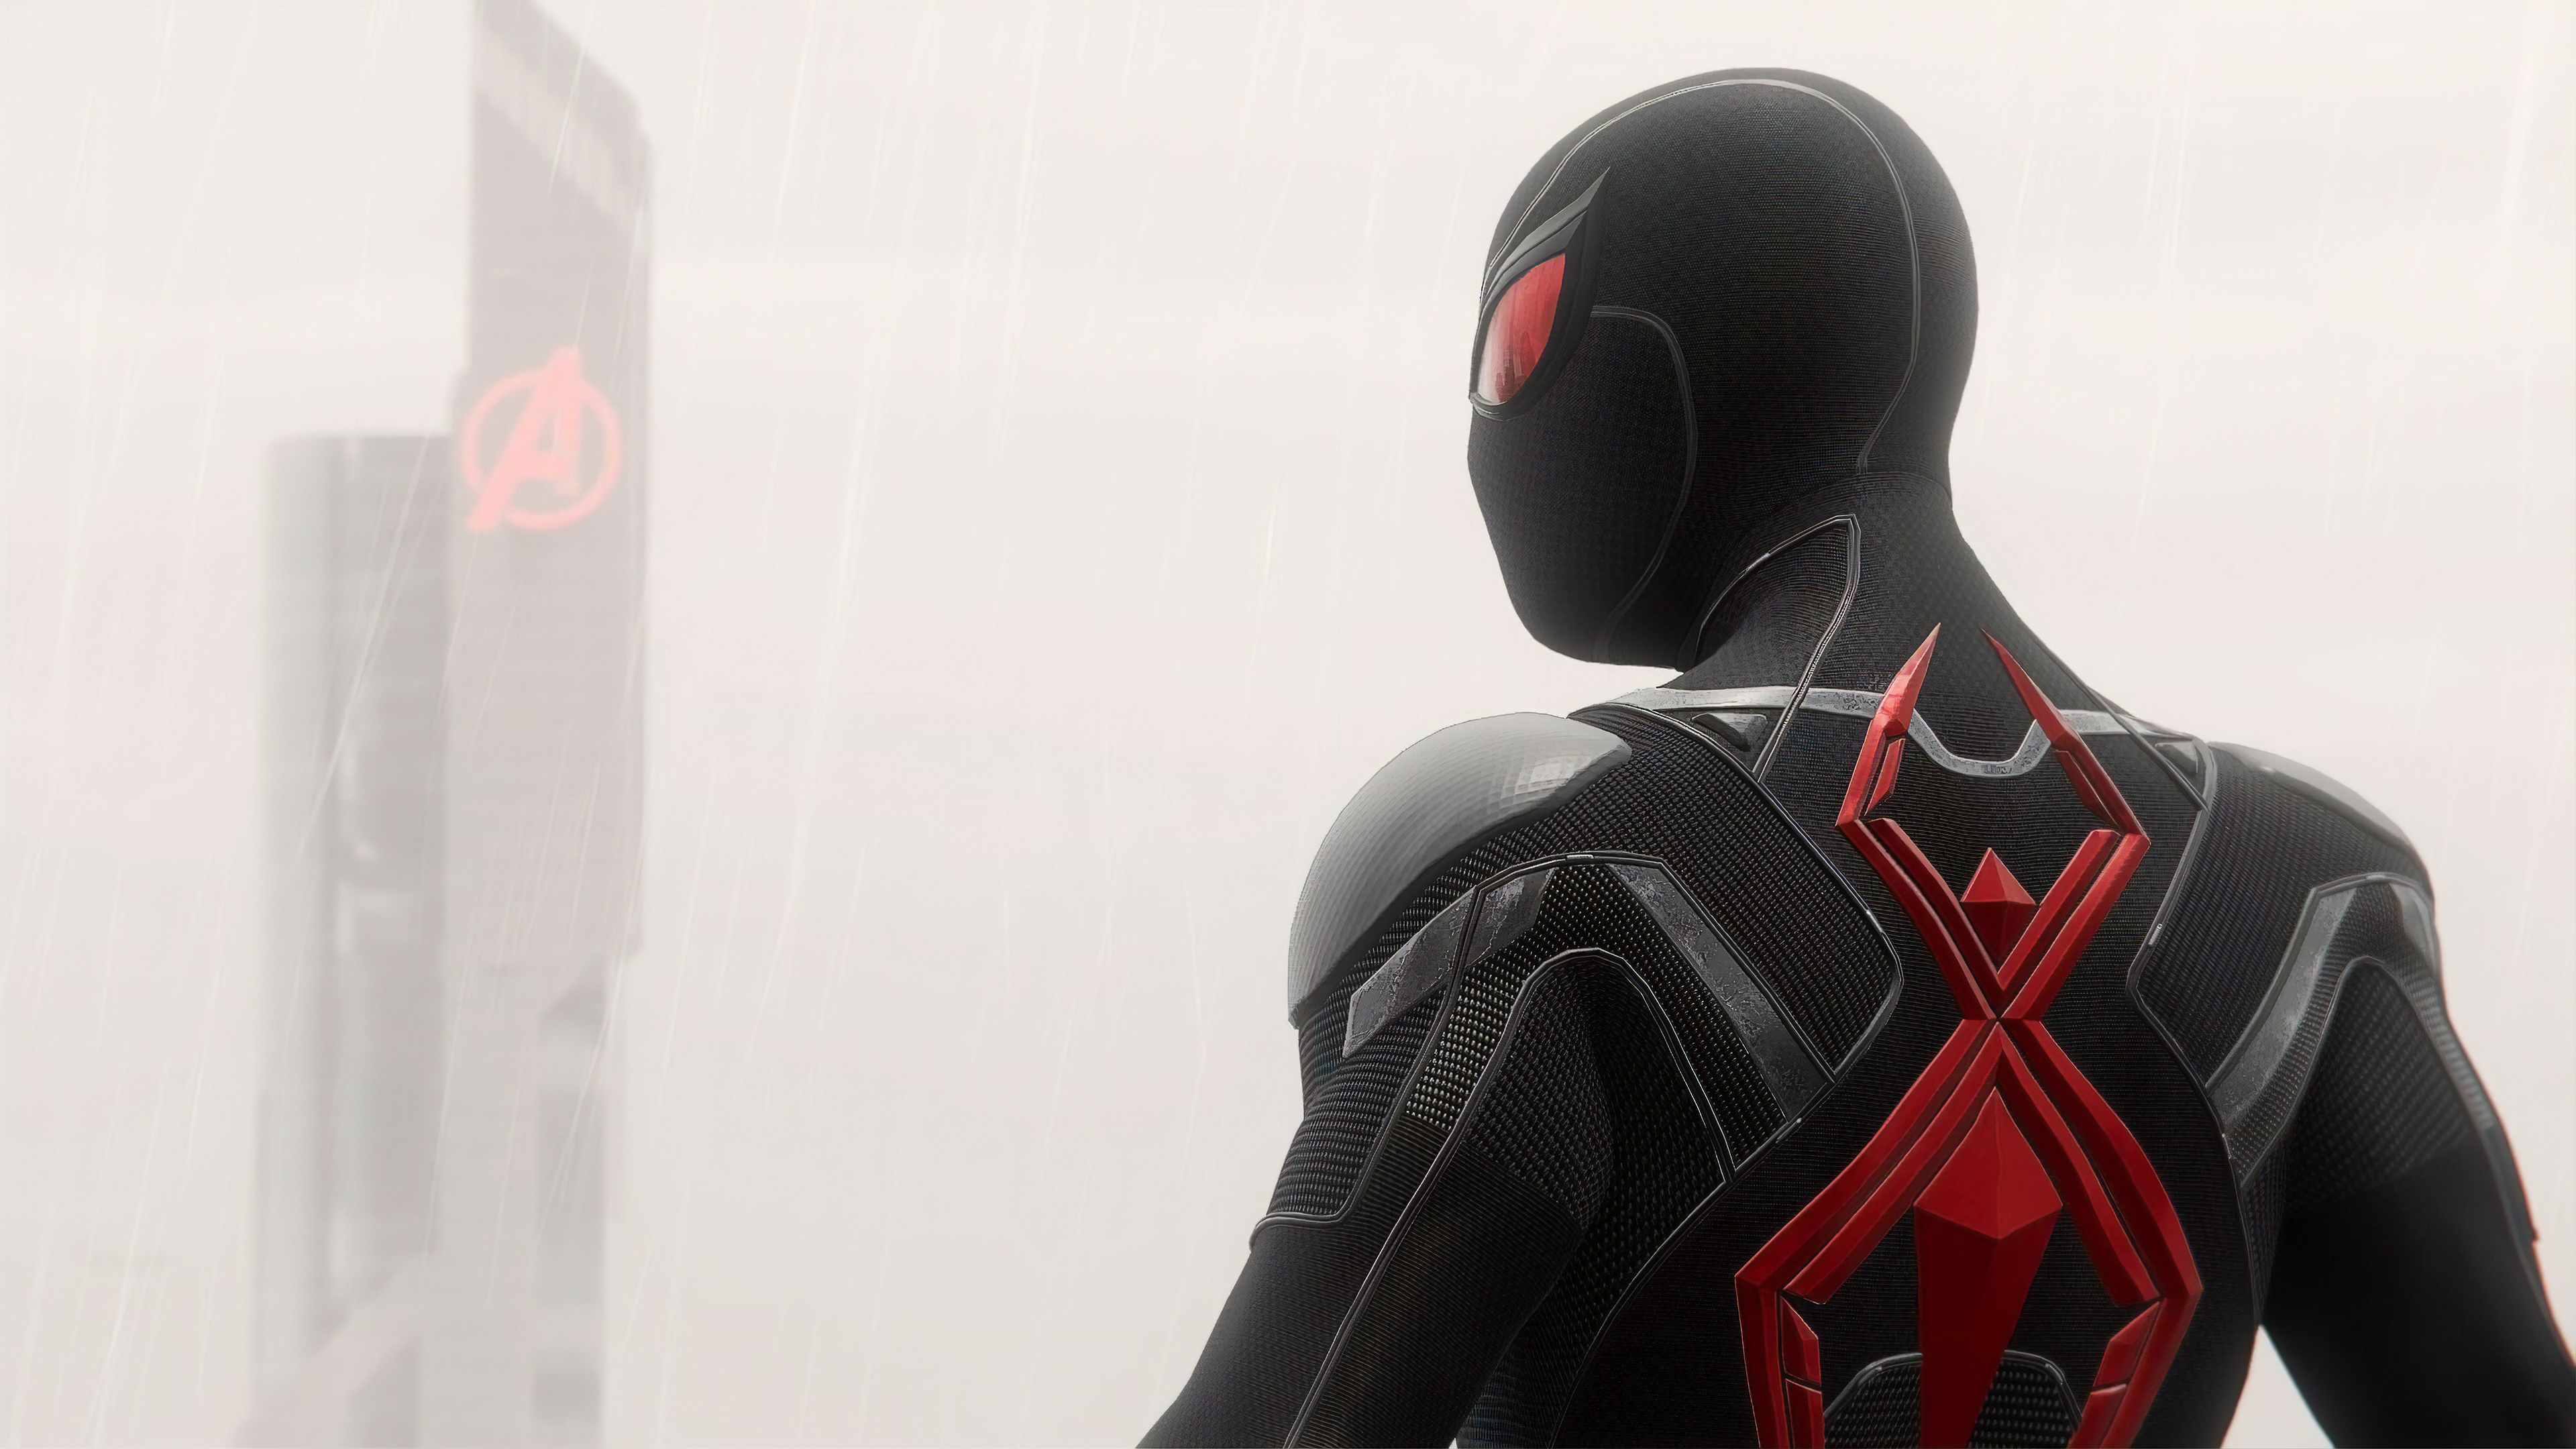 Aninimal Book: Spiderman Black And Red Suit 4k, HD Games, 4k Wallpapers, Images, Backgrounds, Photos ...